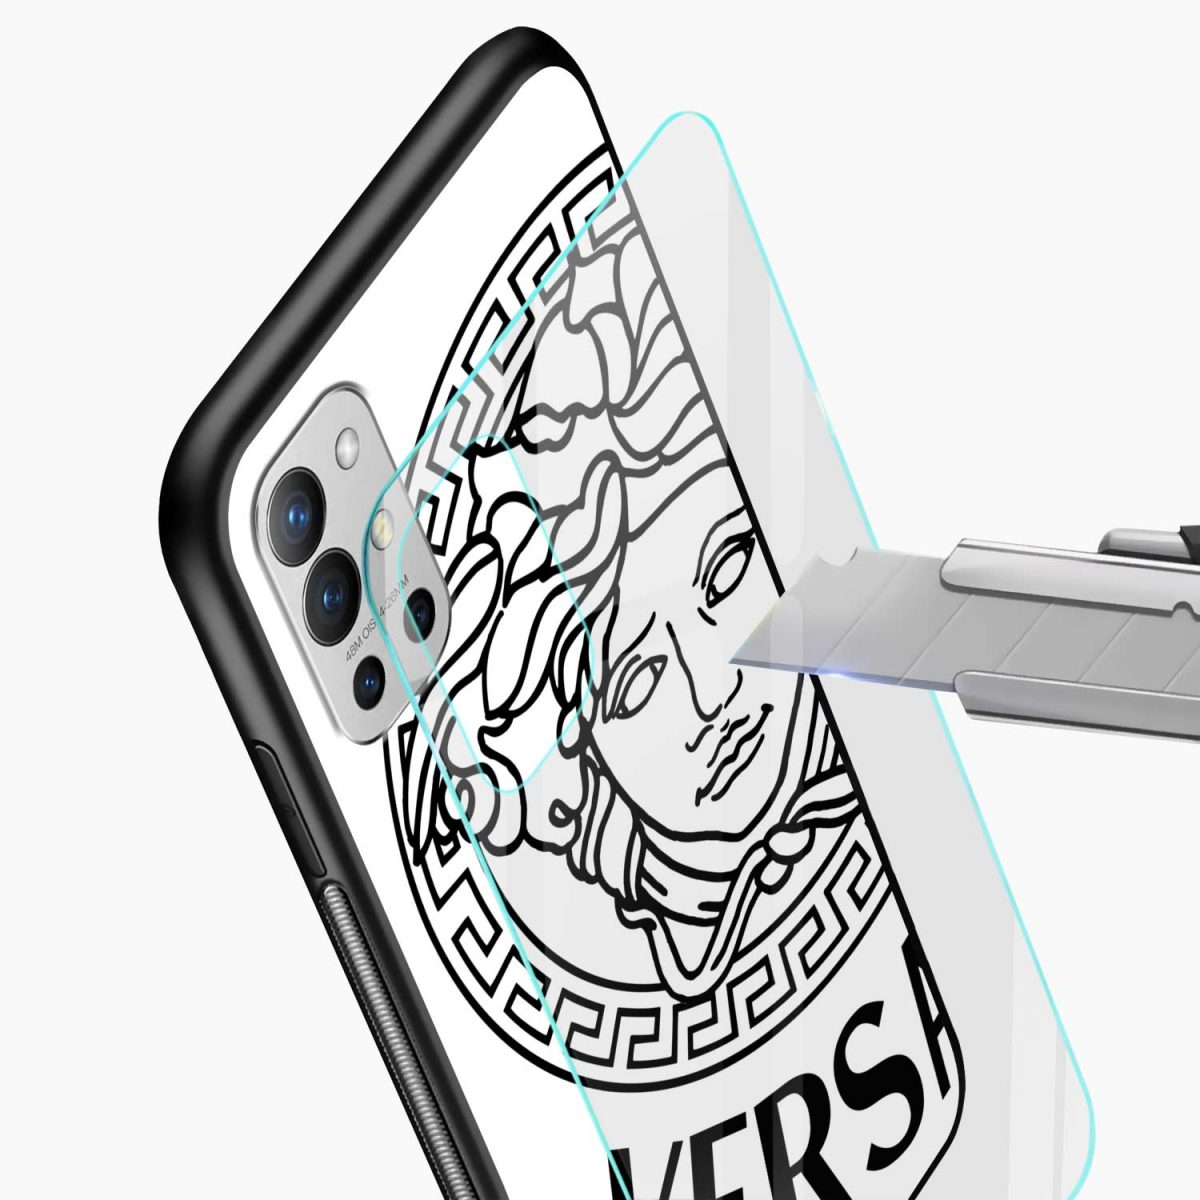 versace black white glass view oneplus 9r back cover